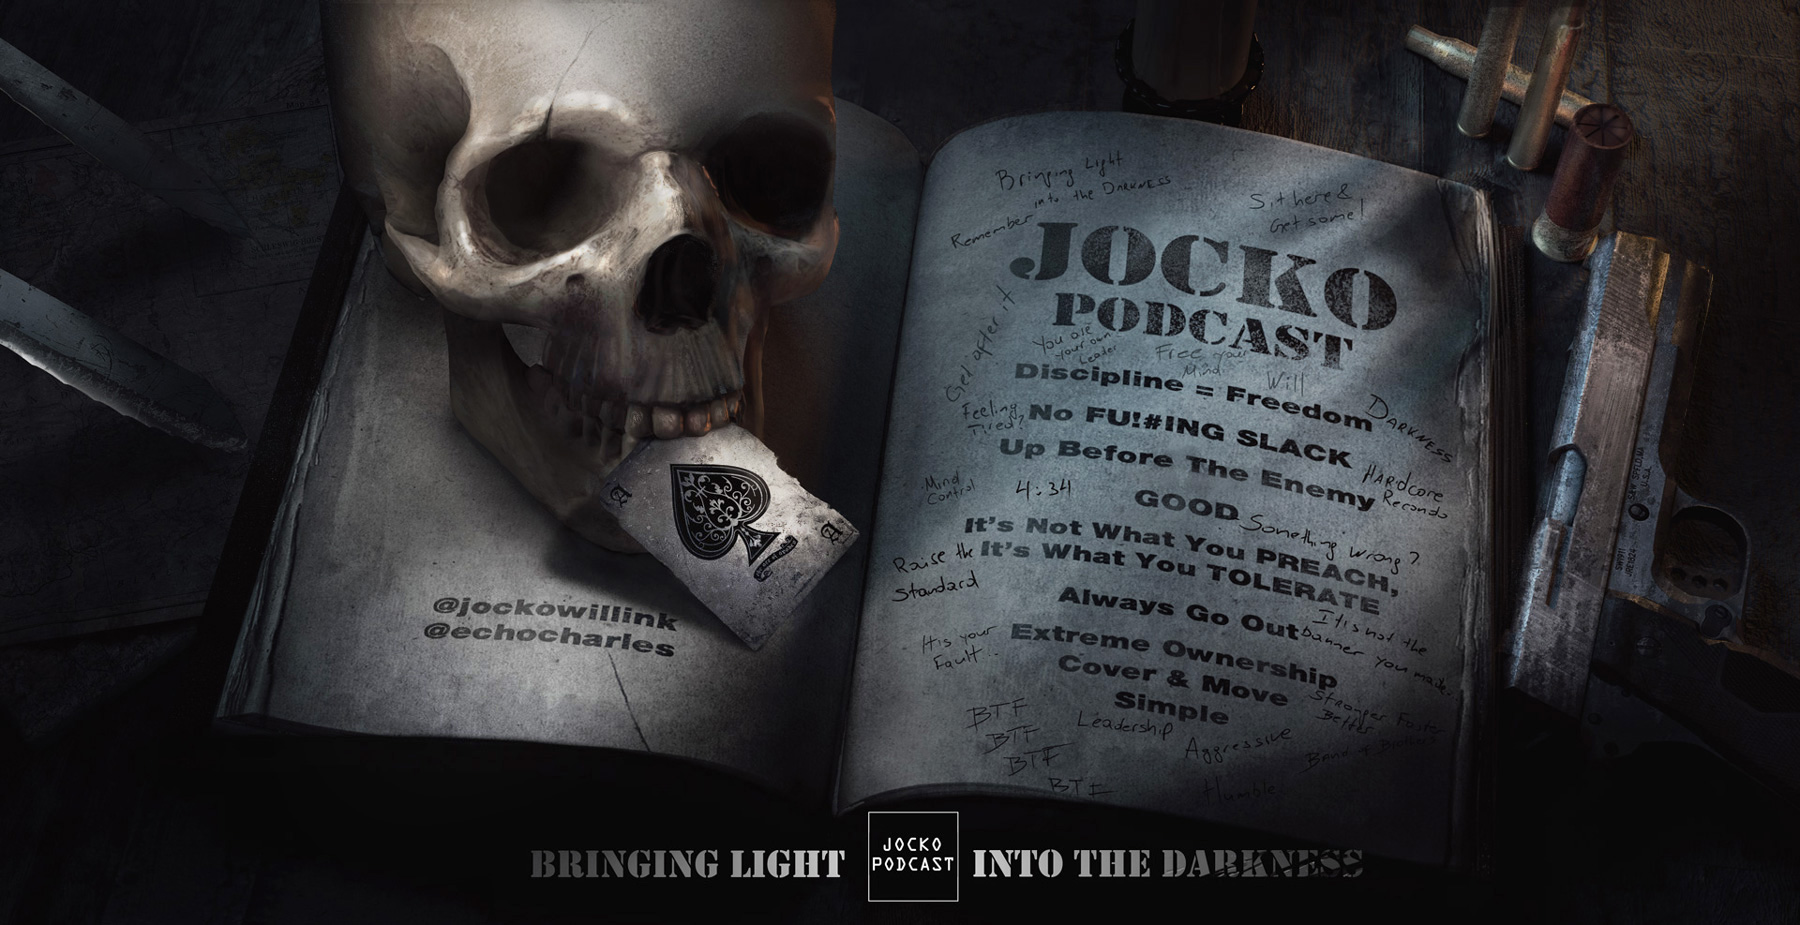 Jocko-Podcast-Bringing-Light-Into-The-Darkness-Illustration-Concept-Art-Volen-CK_3